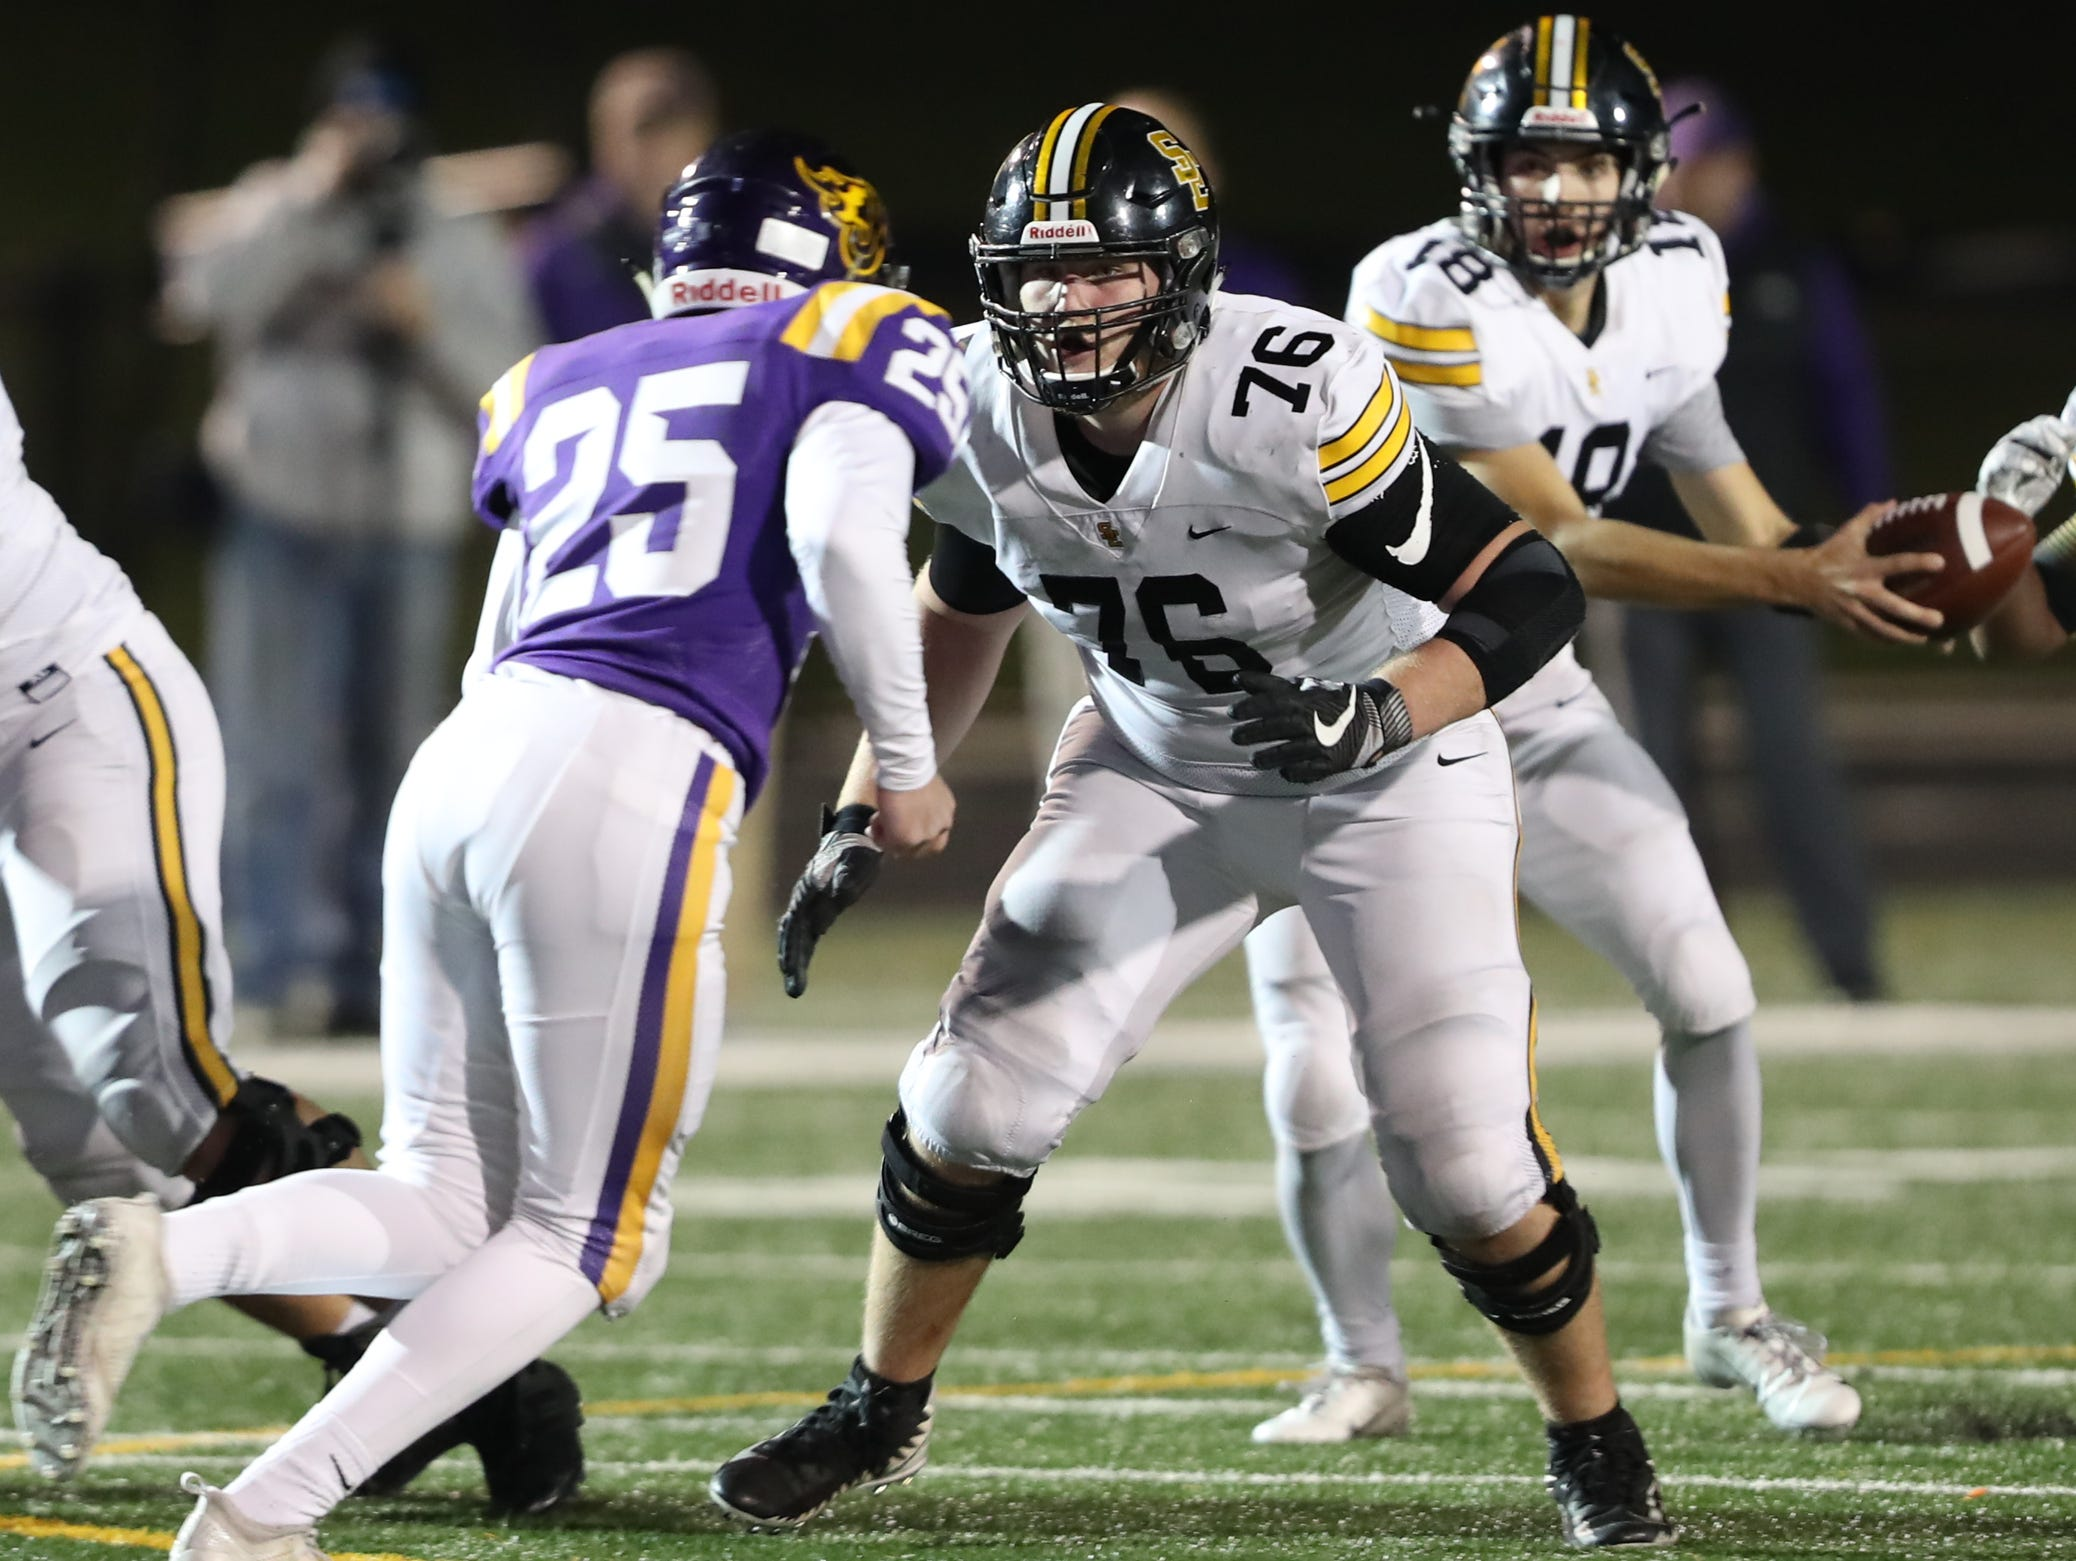 Nov 2, 2018; Johnston, IA, USA; Southeast Polk Rams Josiah Rowland (76) blocks Johnston Dragons Jake Thilges (25) at Johnston Stadium. The Rams beat the Dragons 21-7.